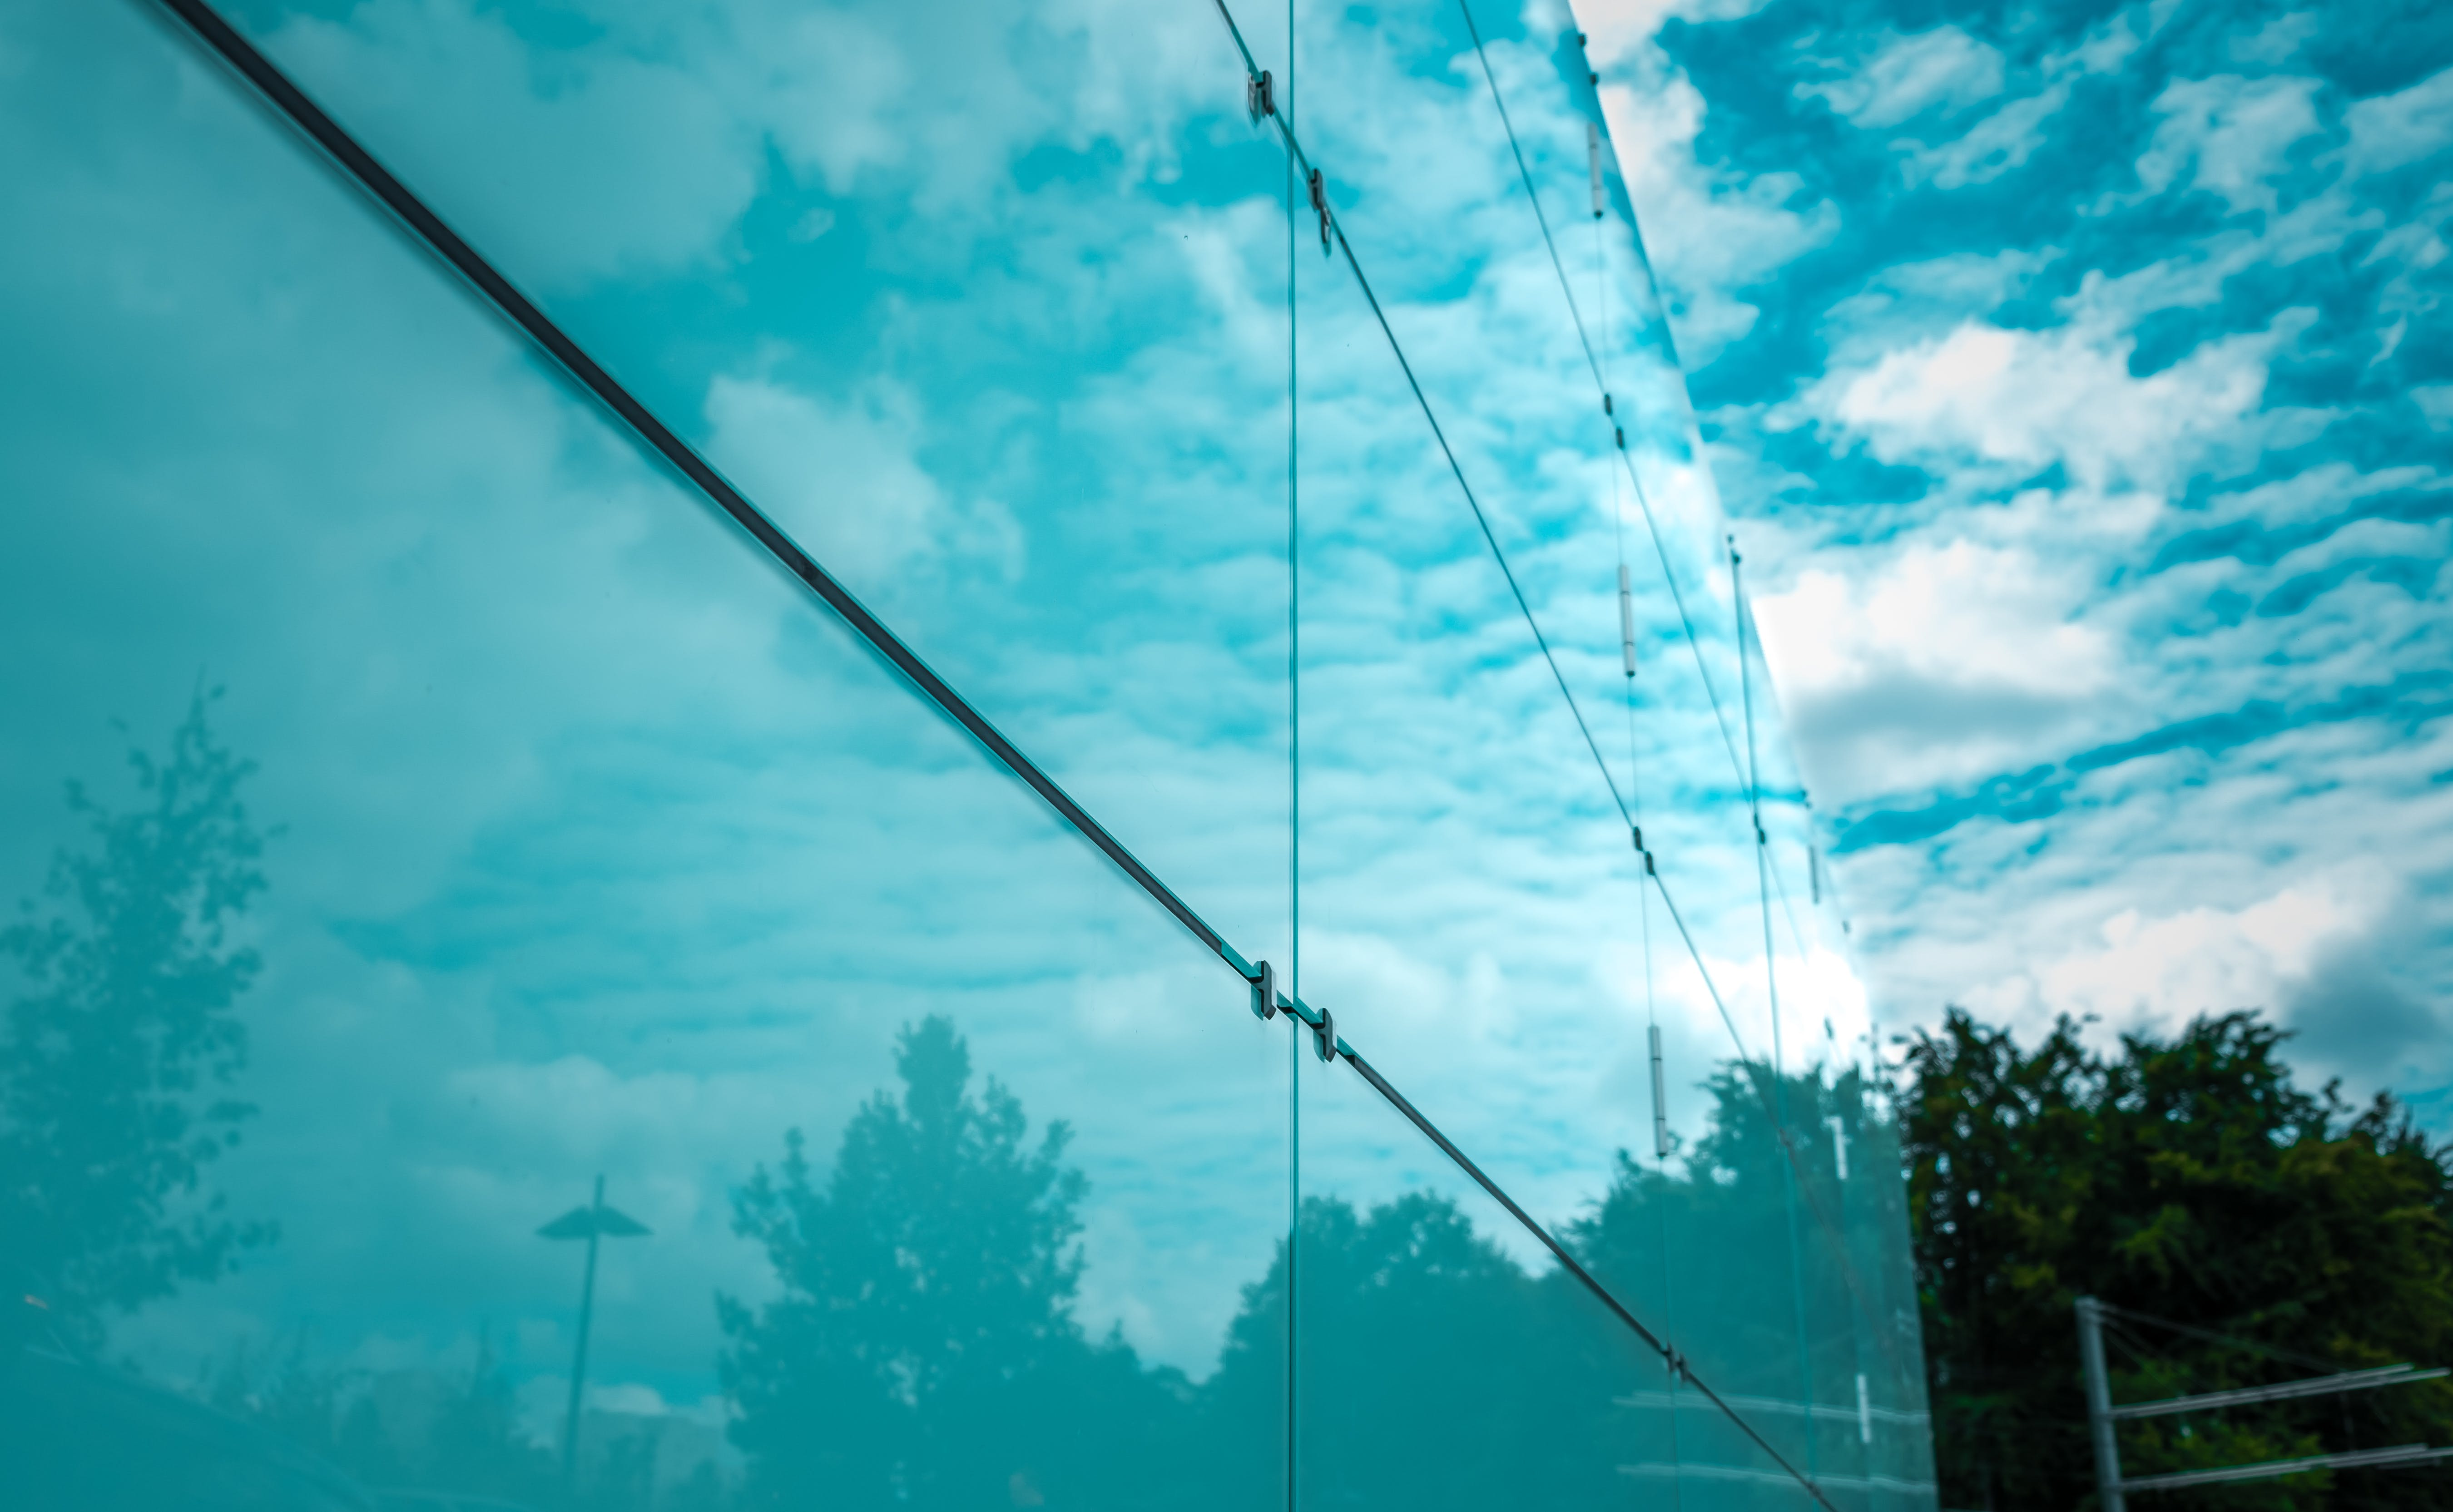 Free stock photo of trees, abstract, lines, blue sky